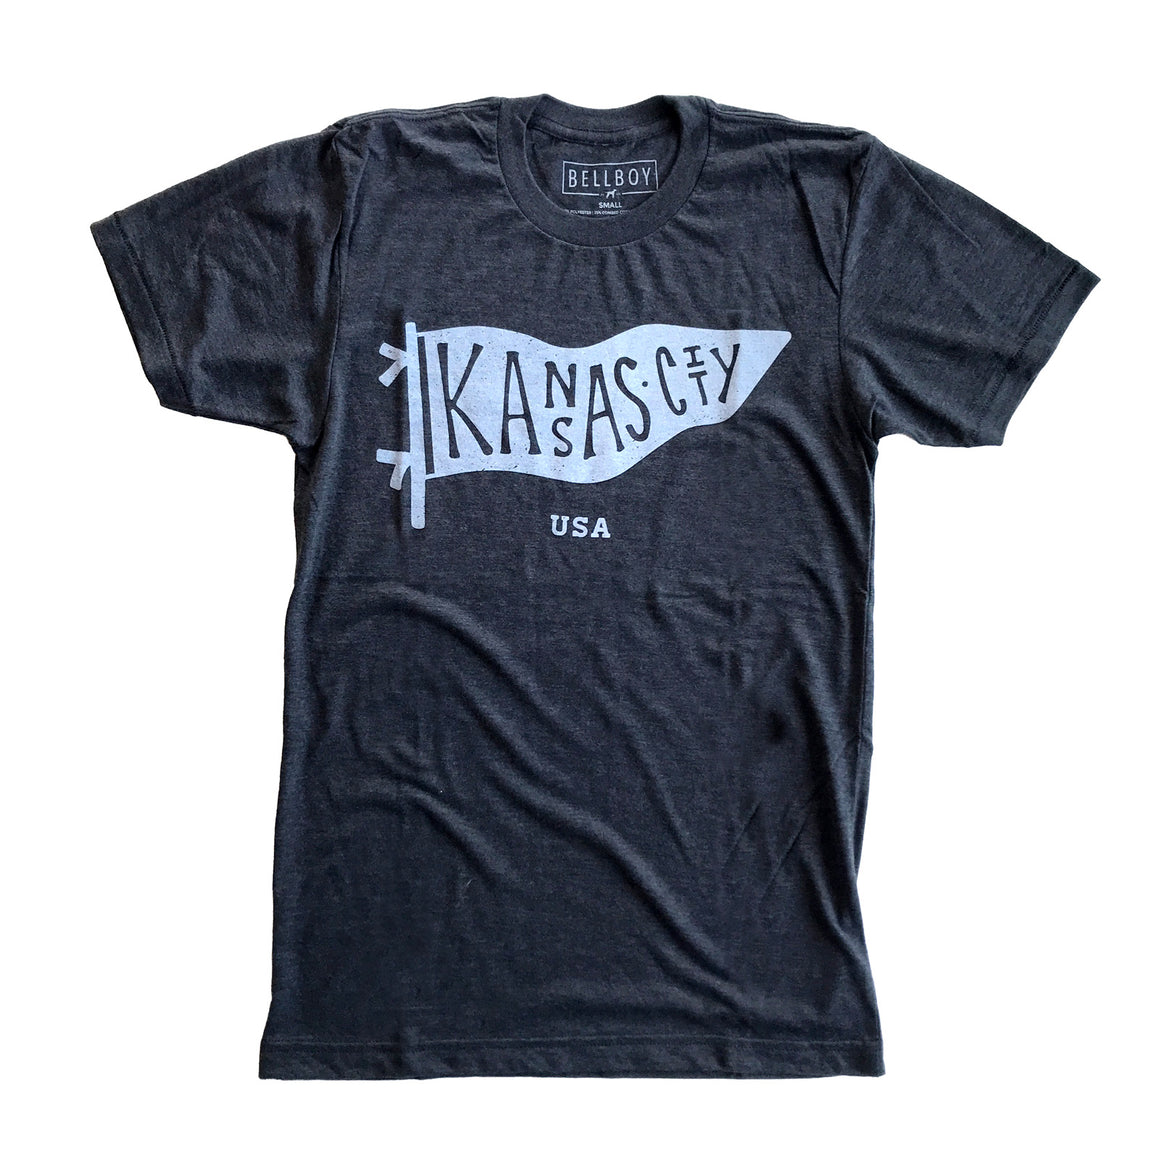 BELLBOY | KC PENNANT T-SHIRT - CHARCOAL